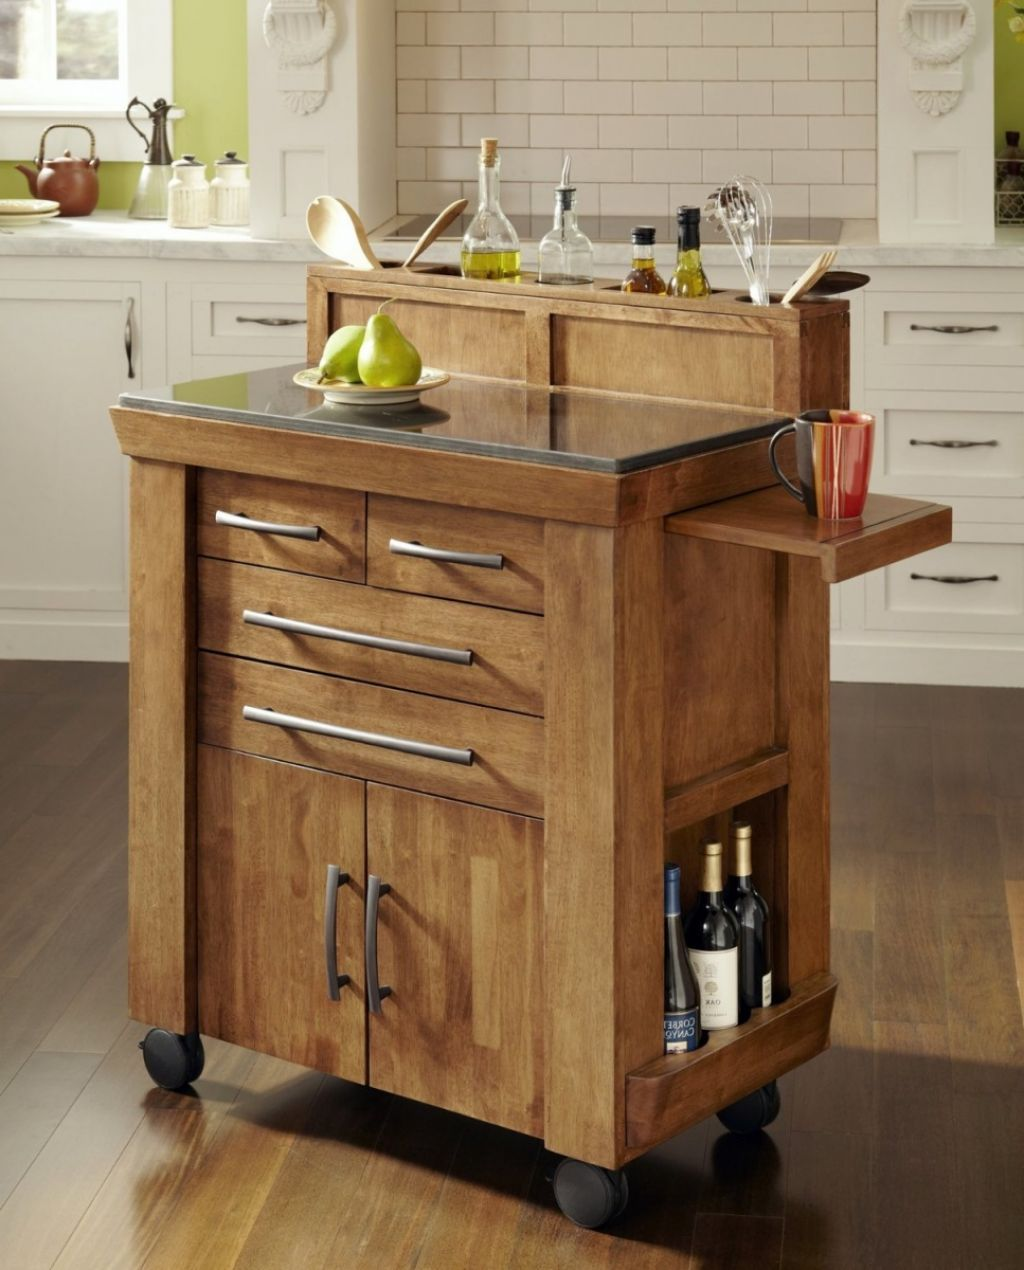 Portable kitchen island designs - Portable Kitchen Islands On Wheels